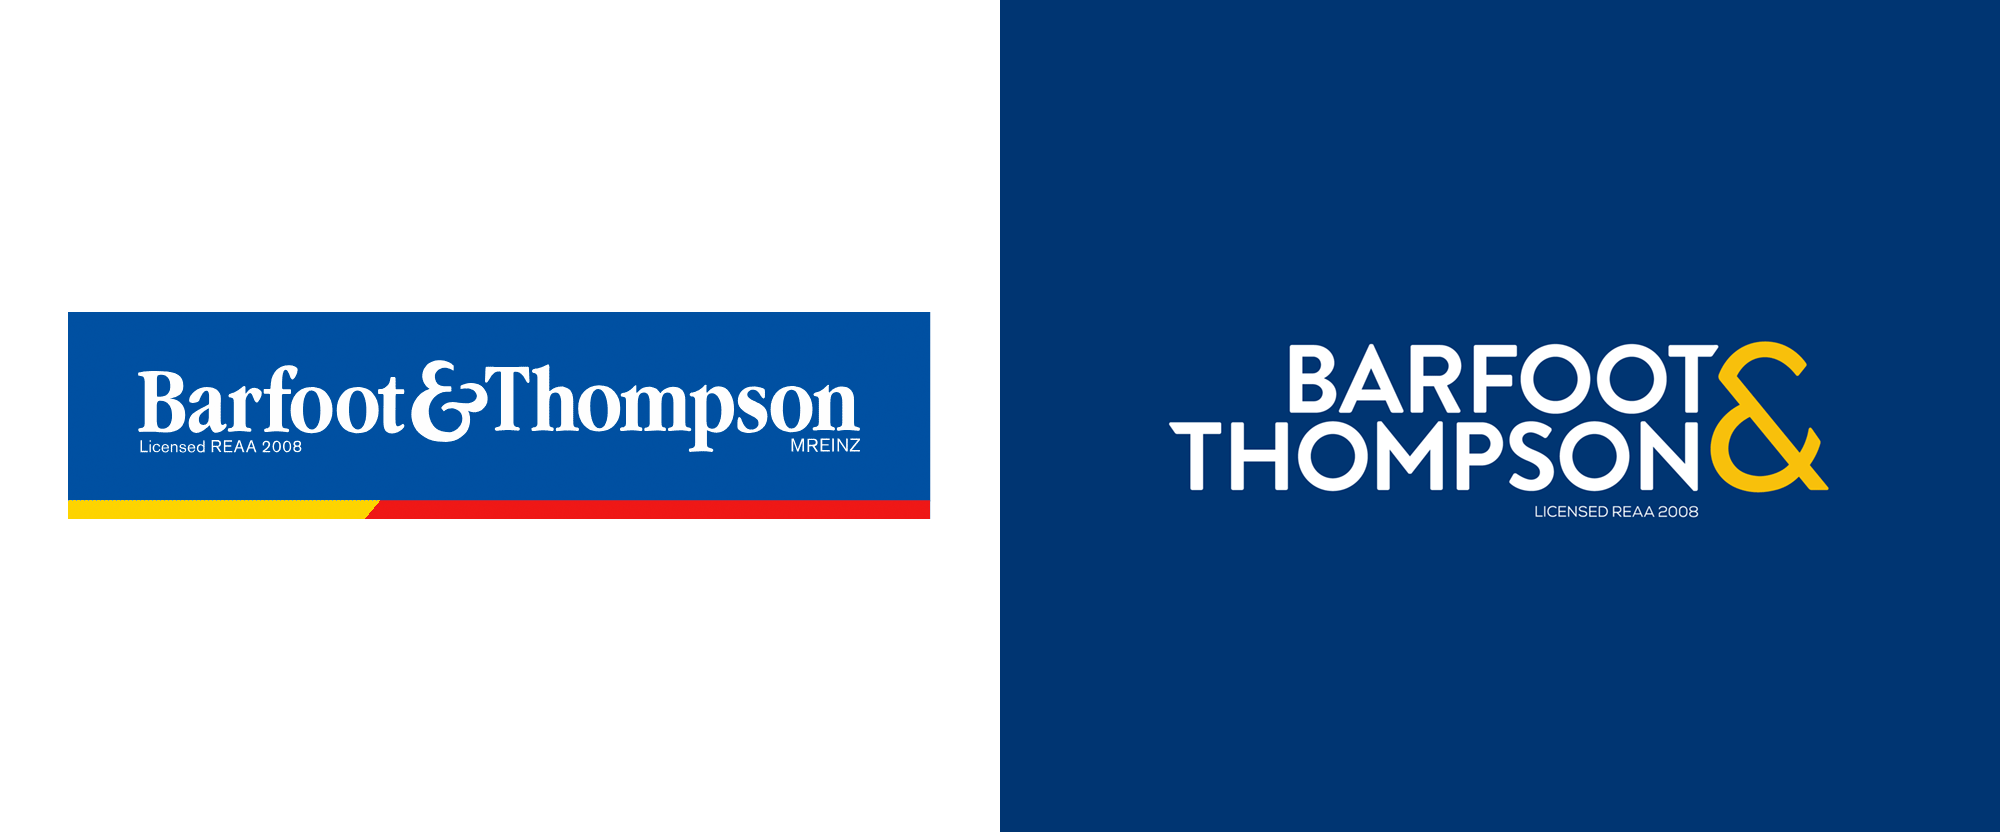 New Logo and Identity for Barfoot & Thompson